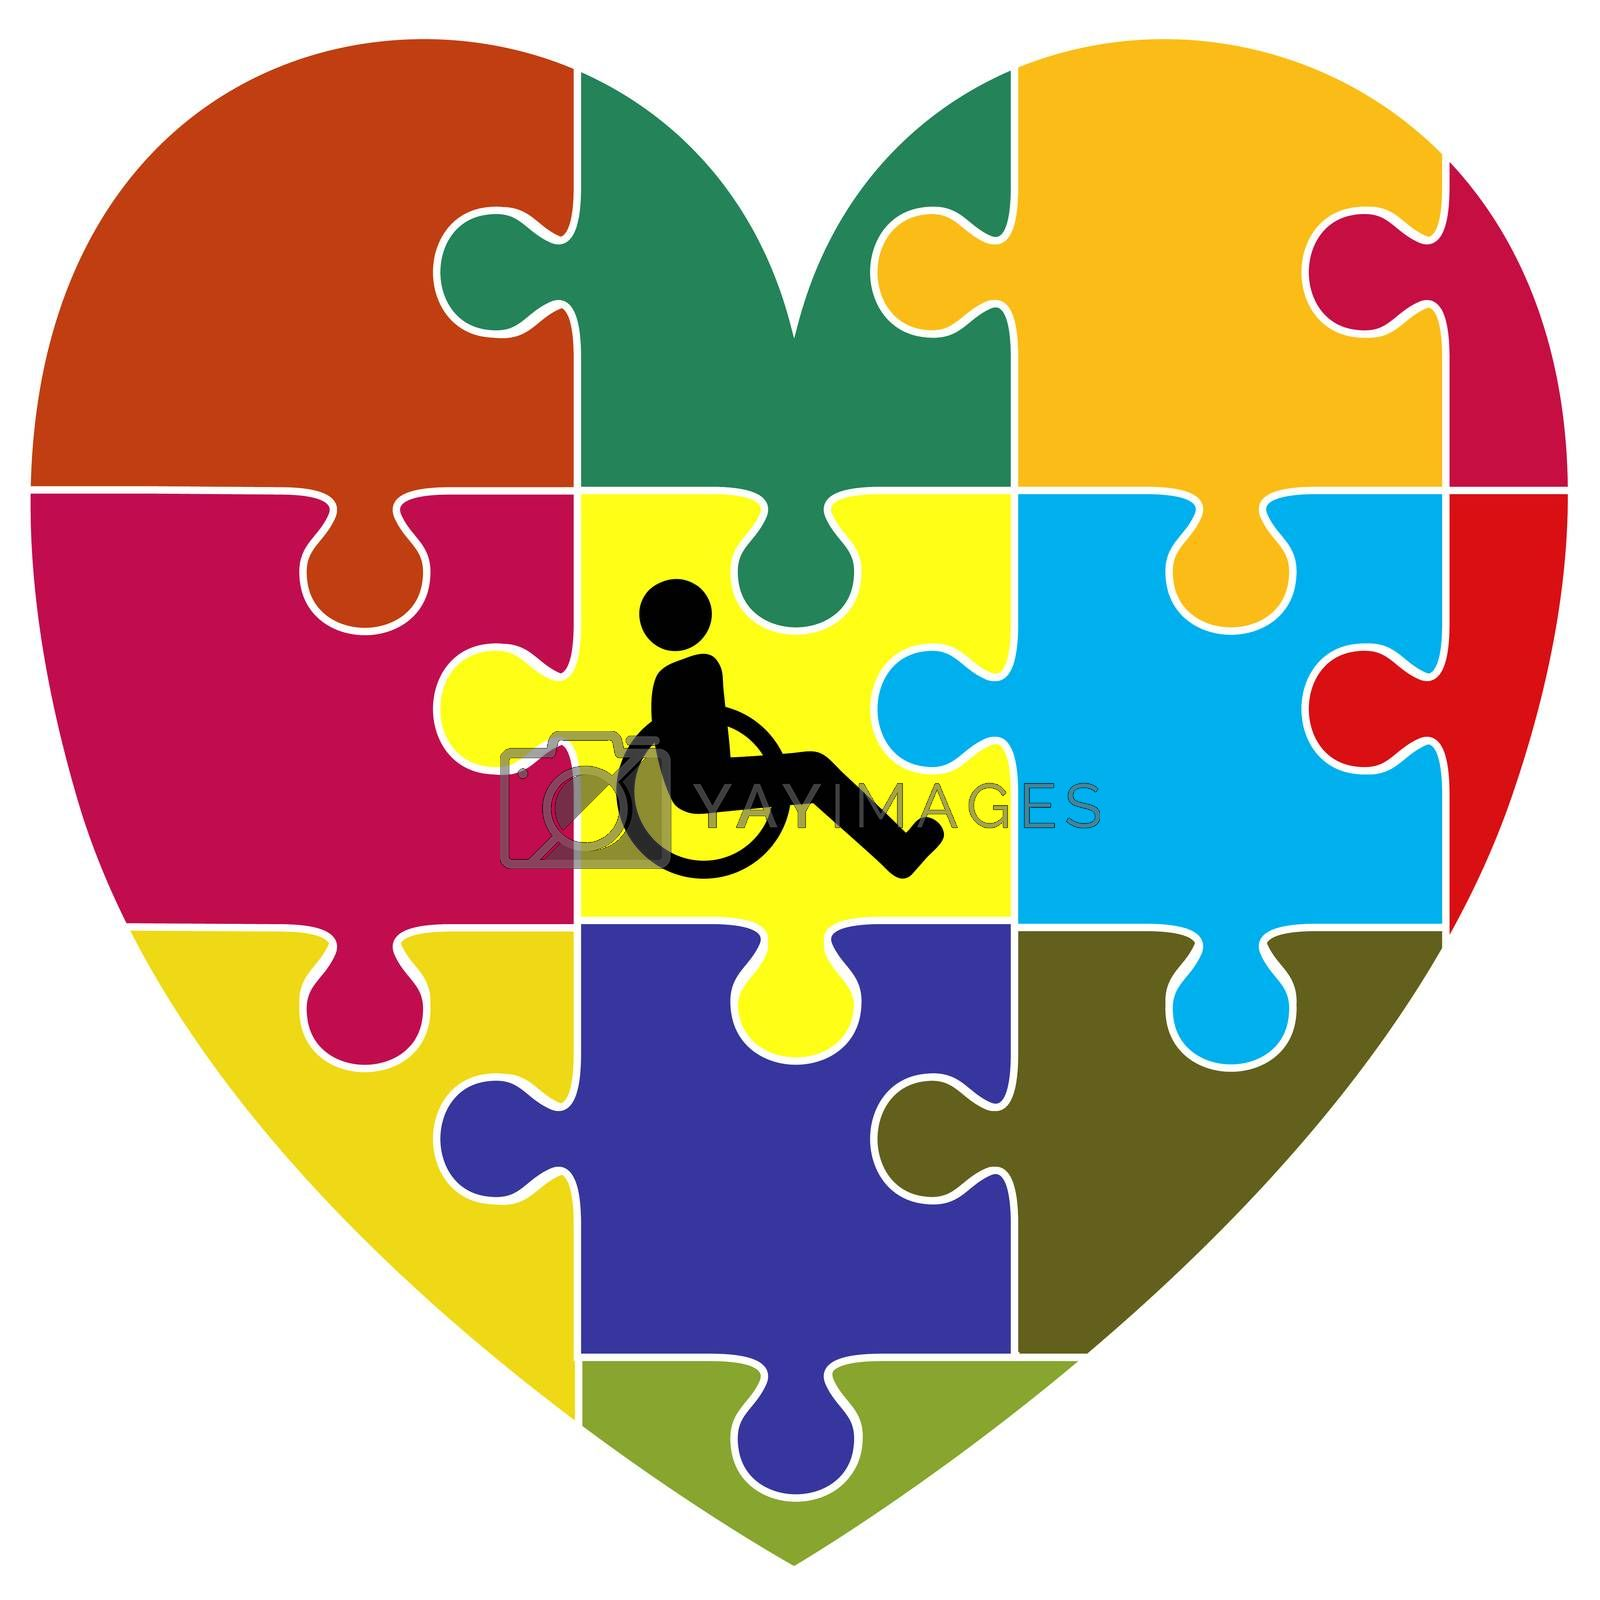 Symbol for the successful integration of handicapped people into community living